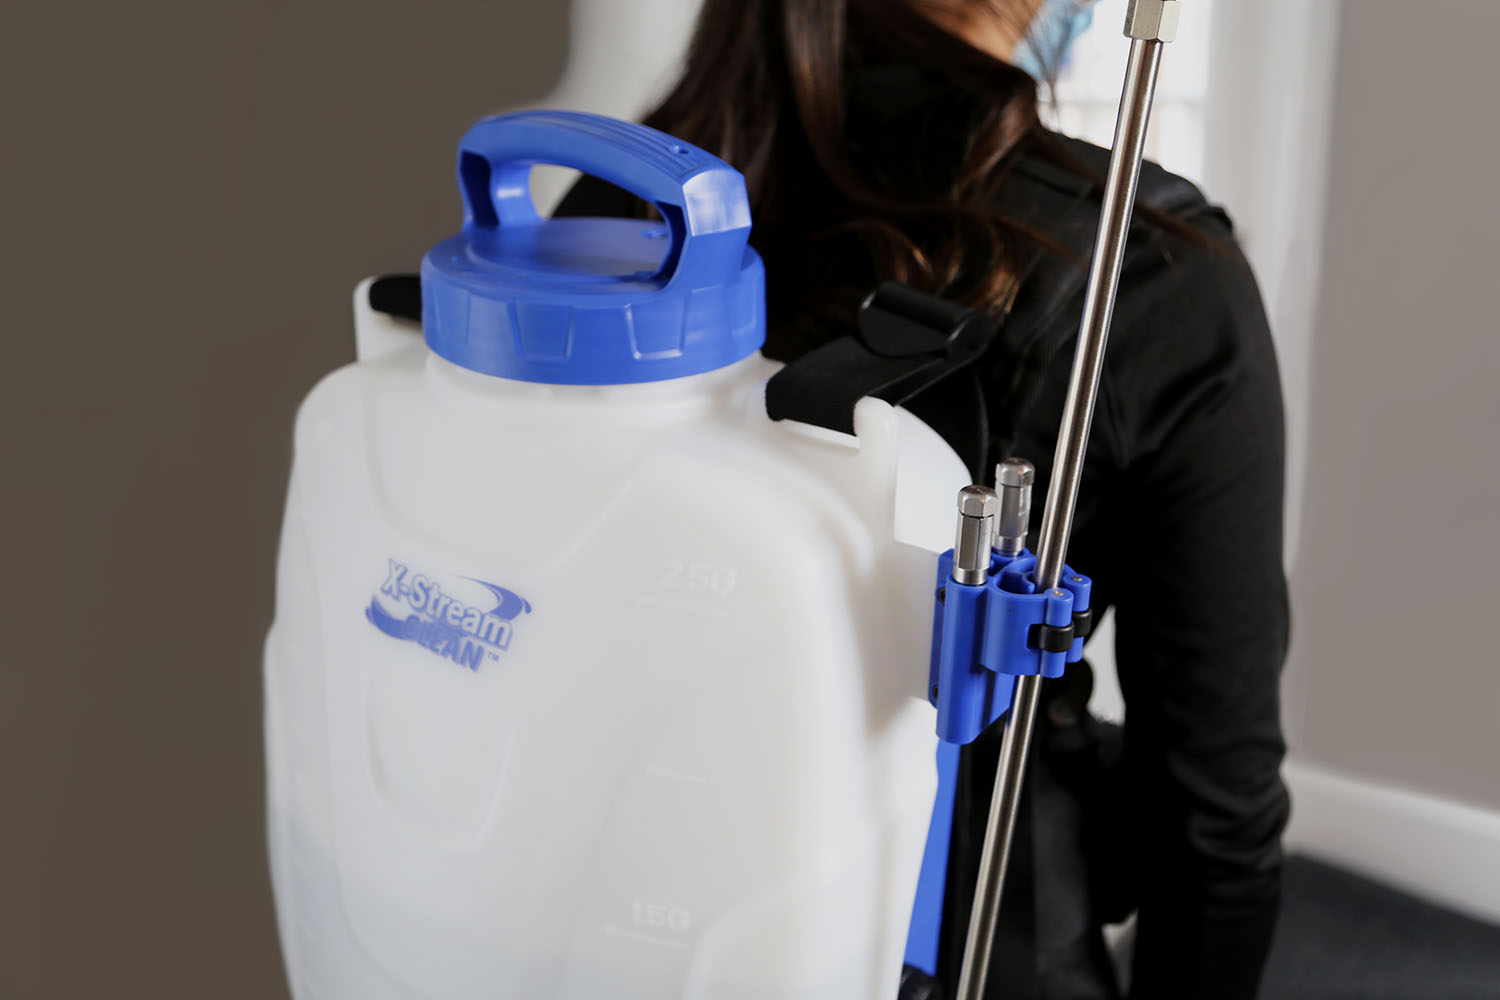 woman wearing an X-Stream Clean Microburst battery powered backpack sprayer in a bathroom